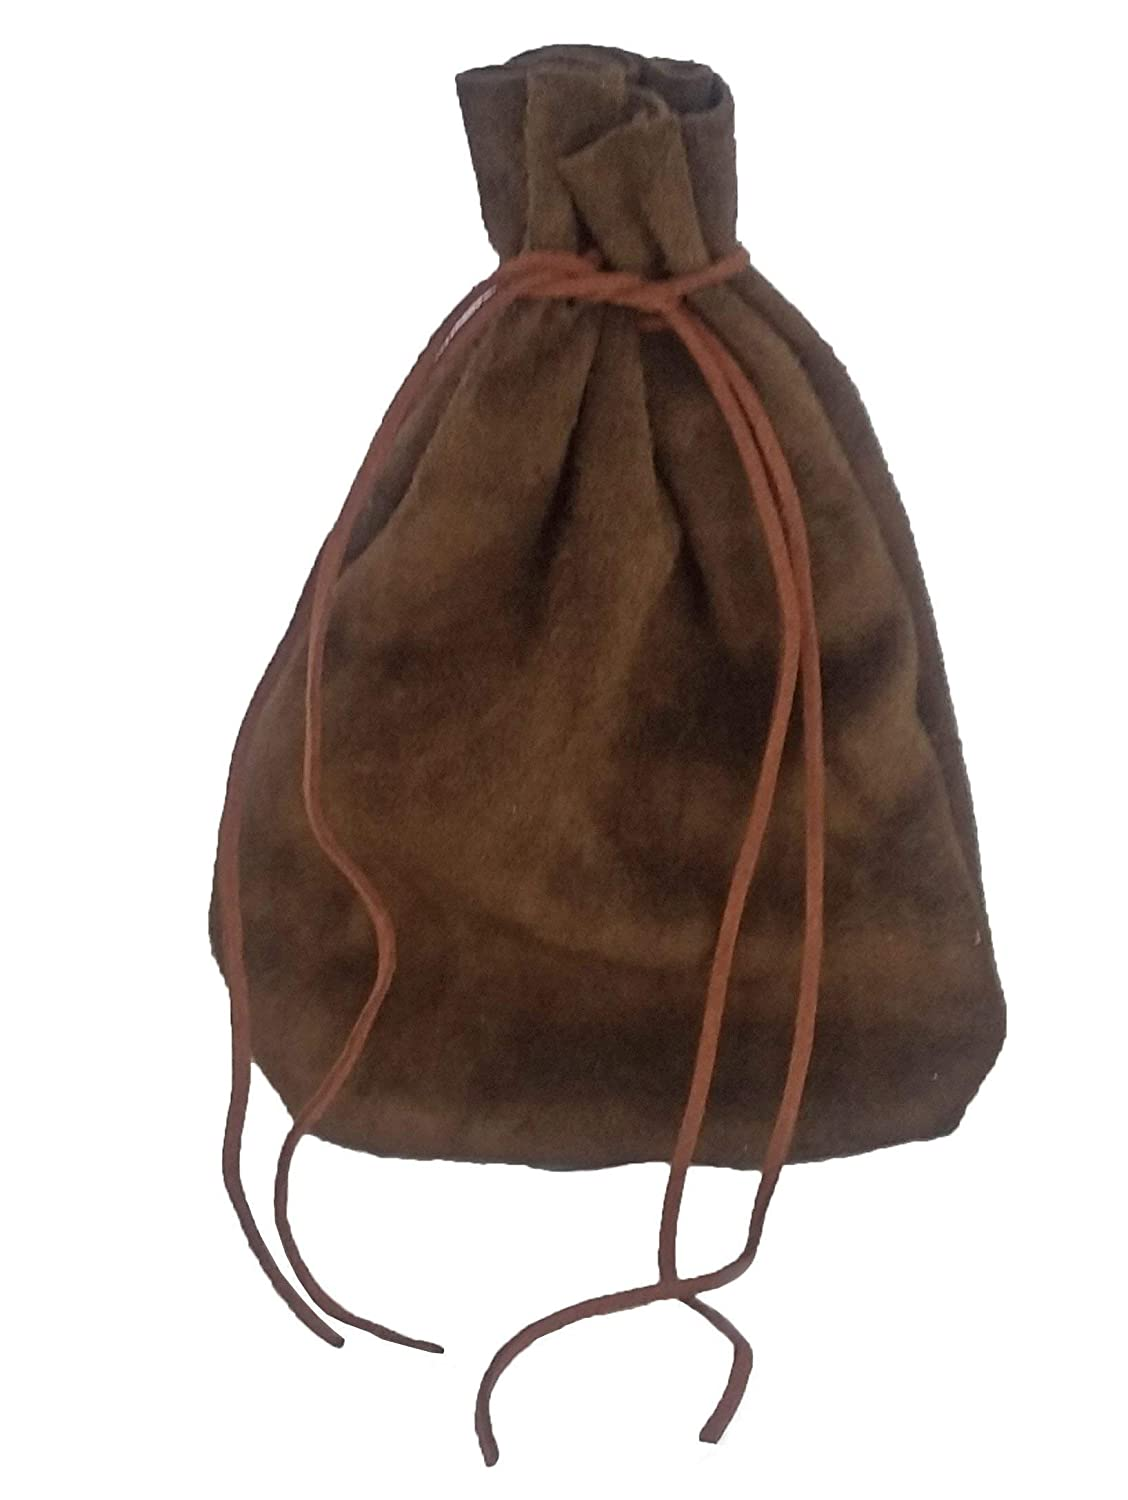 Pouch Drawstring Heavy Suede Leather 5 X 7.5 Inches, Brown